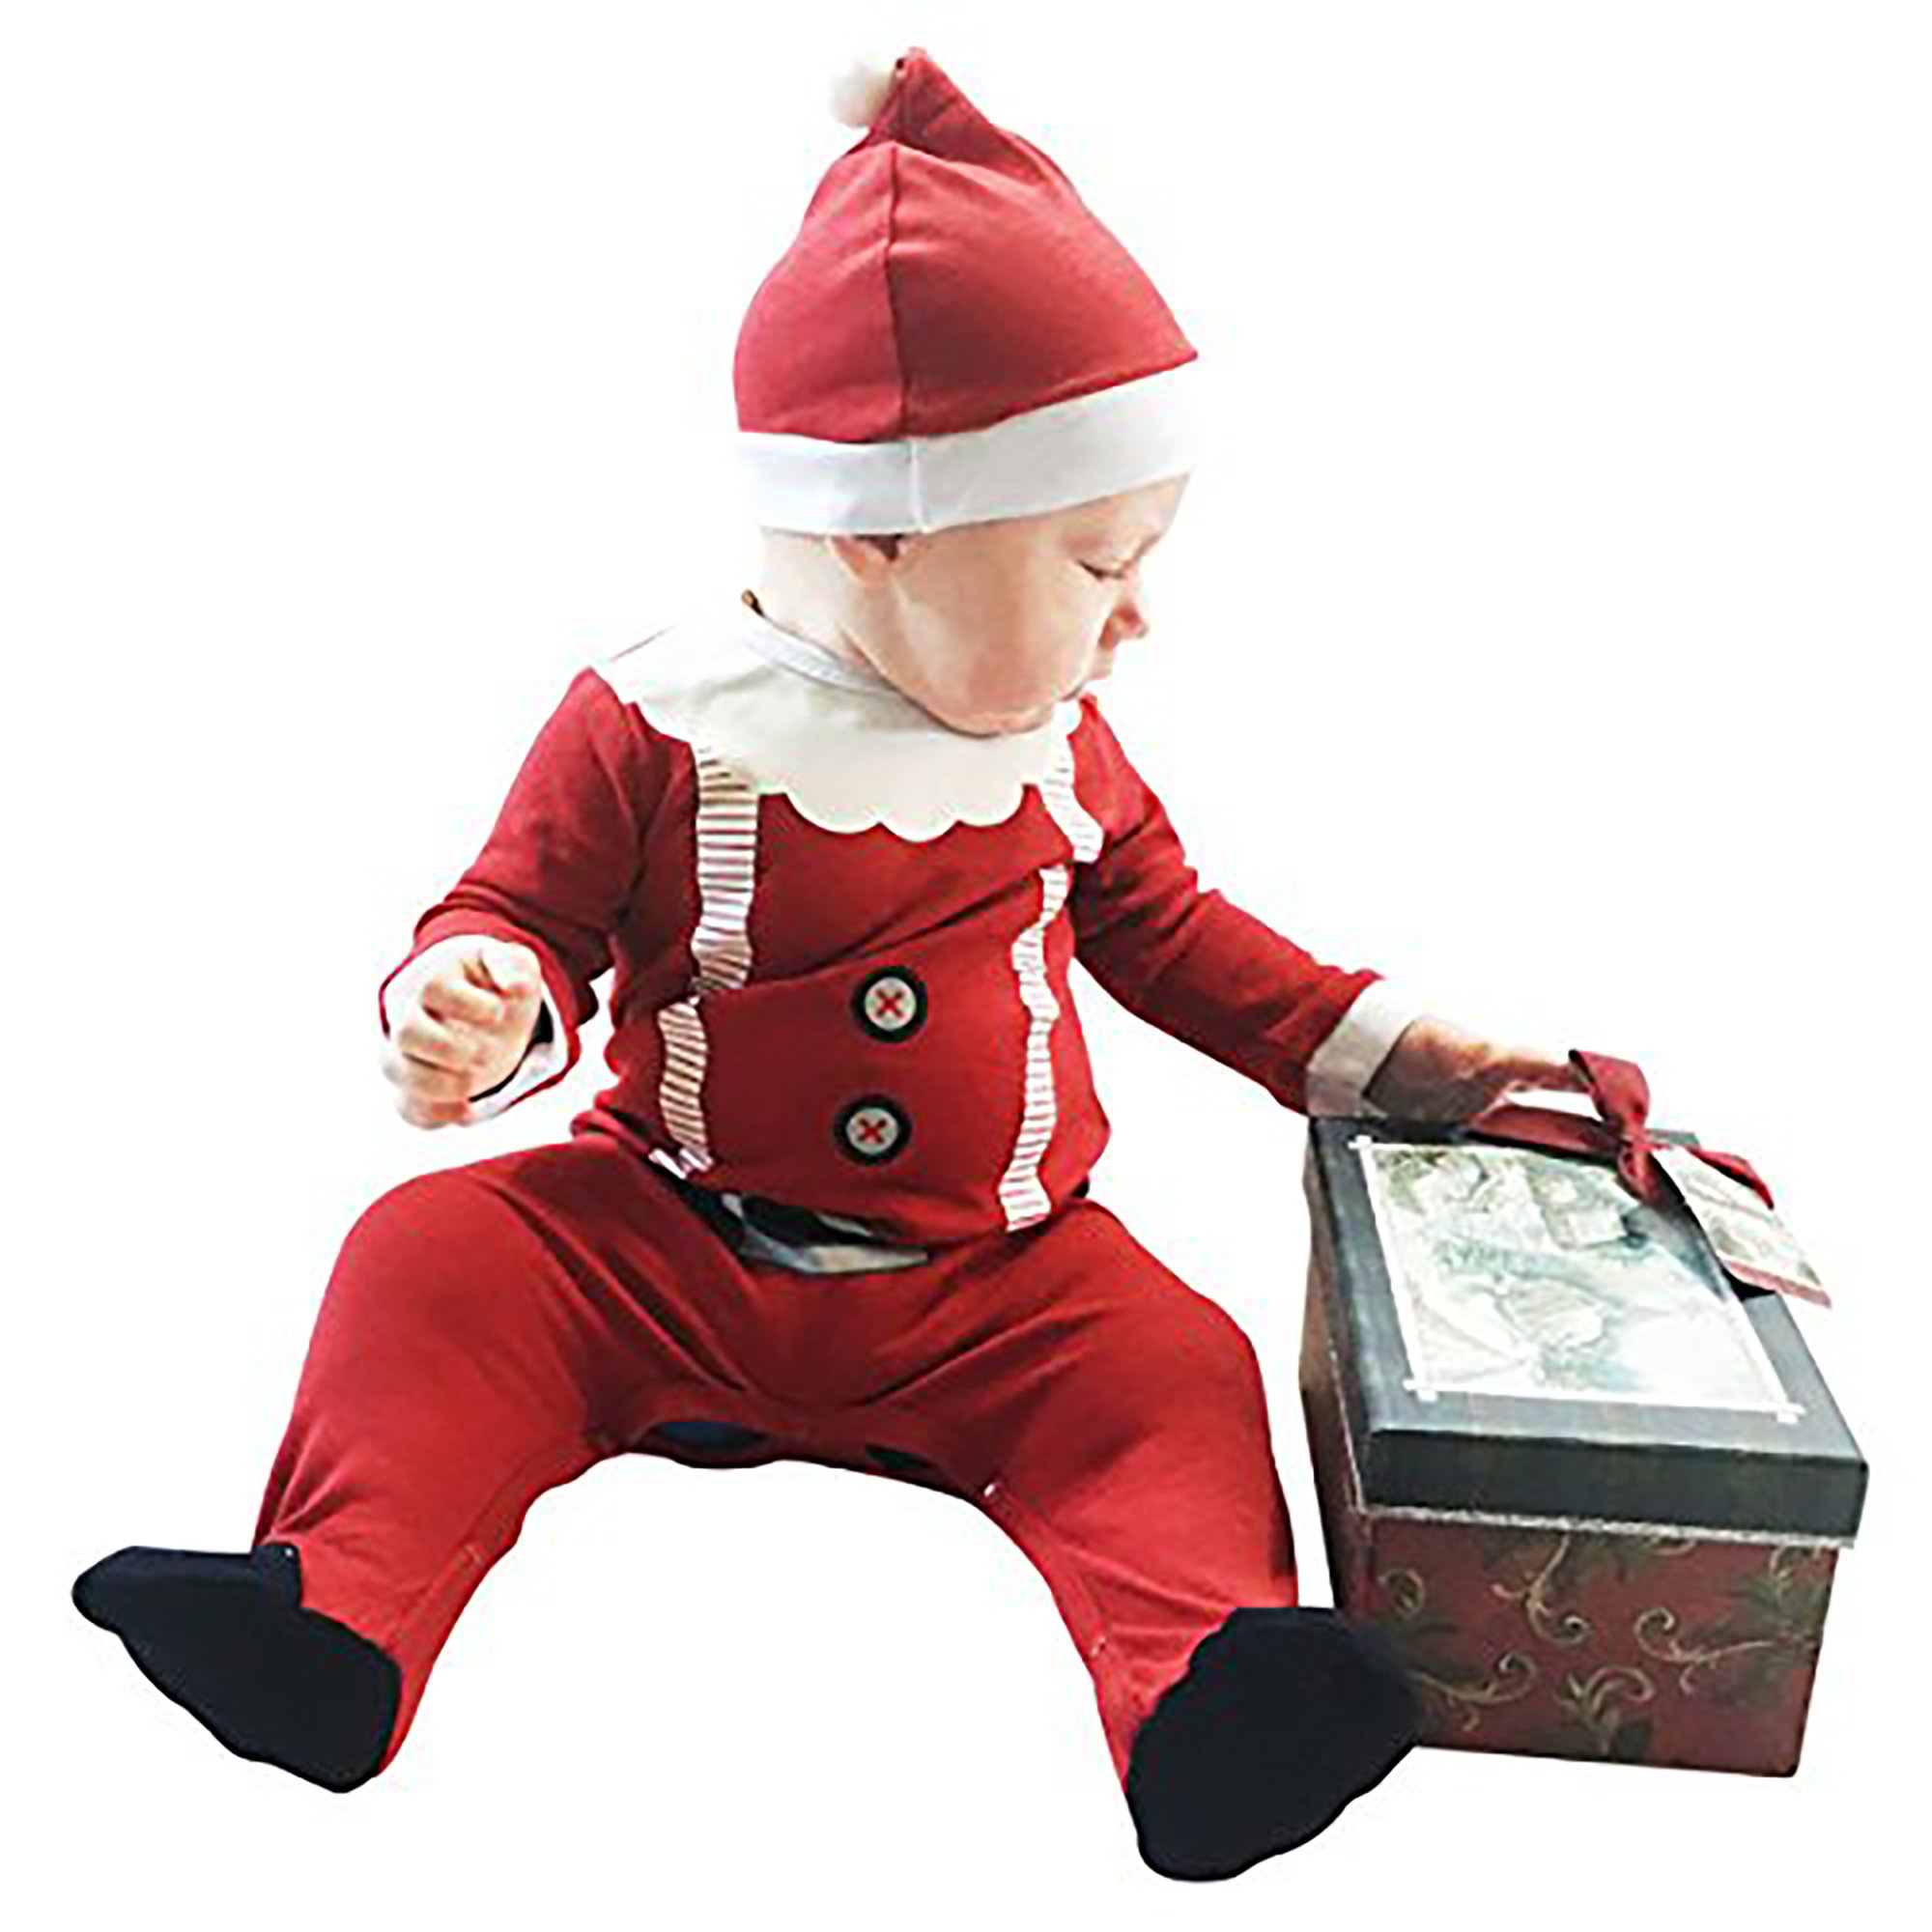 Fayfaire Christmas Pajamas Boutique Quality: Adorable Xmas Santa Suit with Hat 6-12M by Fayfaire (Image #4)